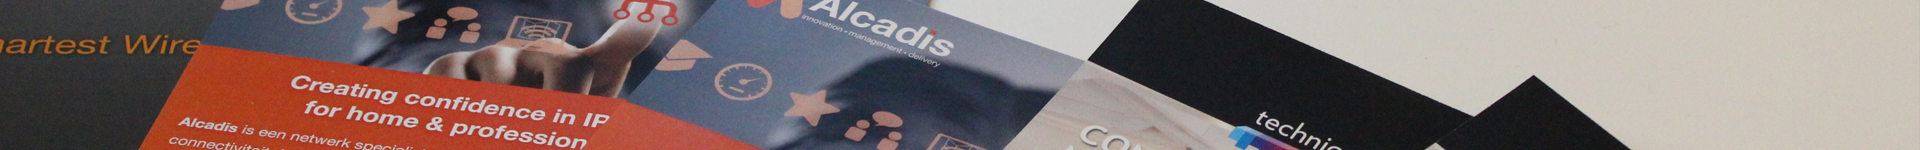 marketing-support-pagebanner-alcadis